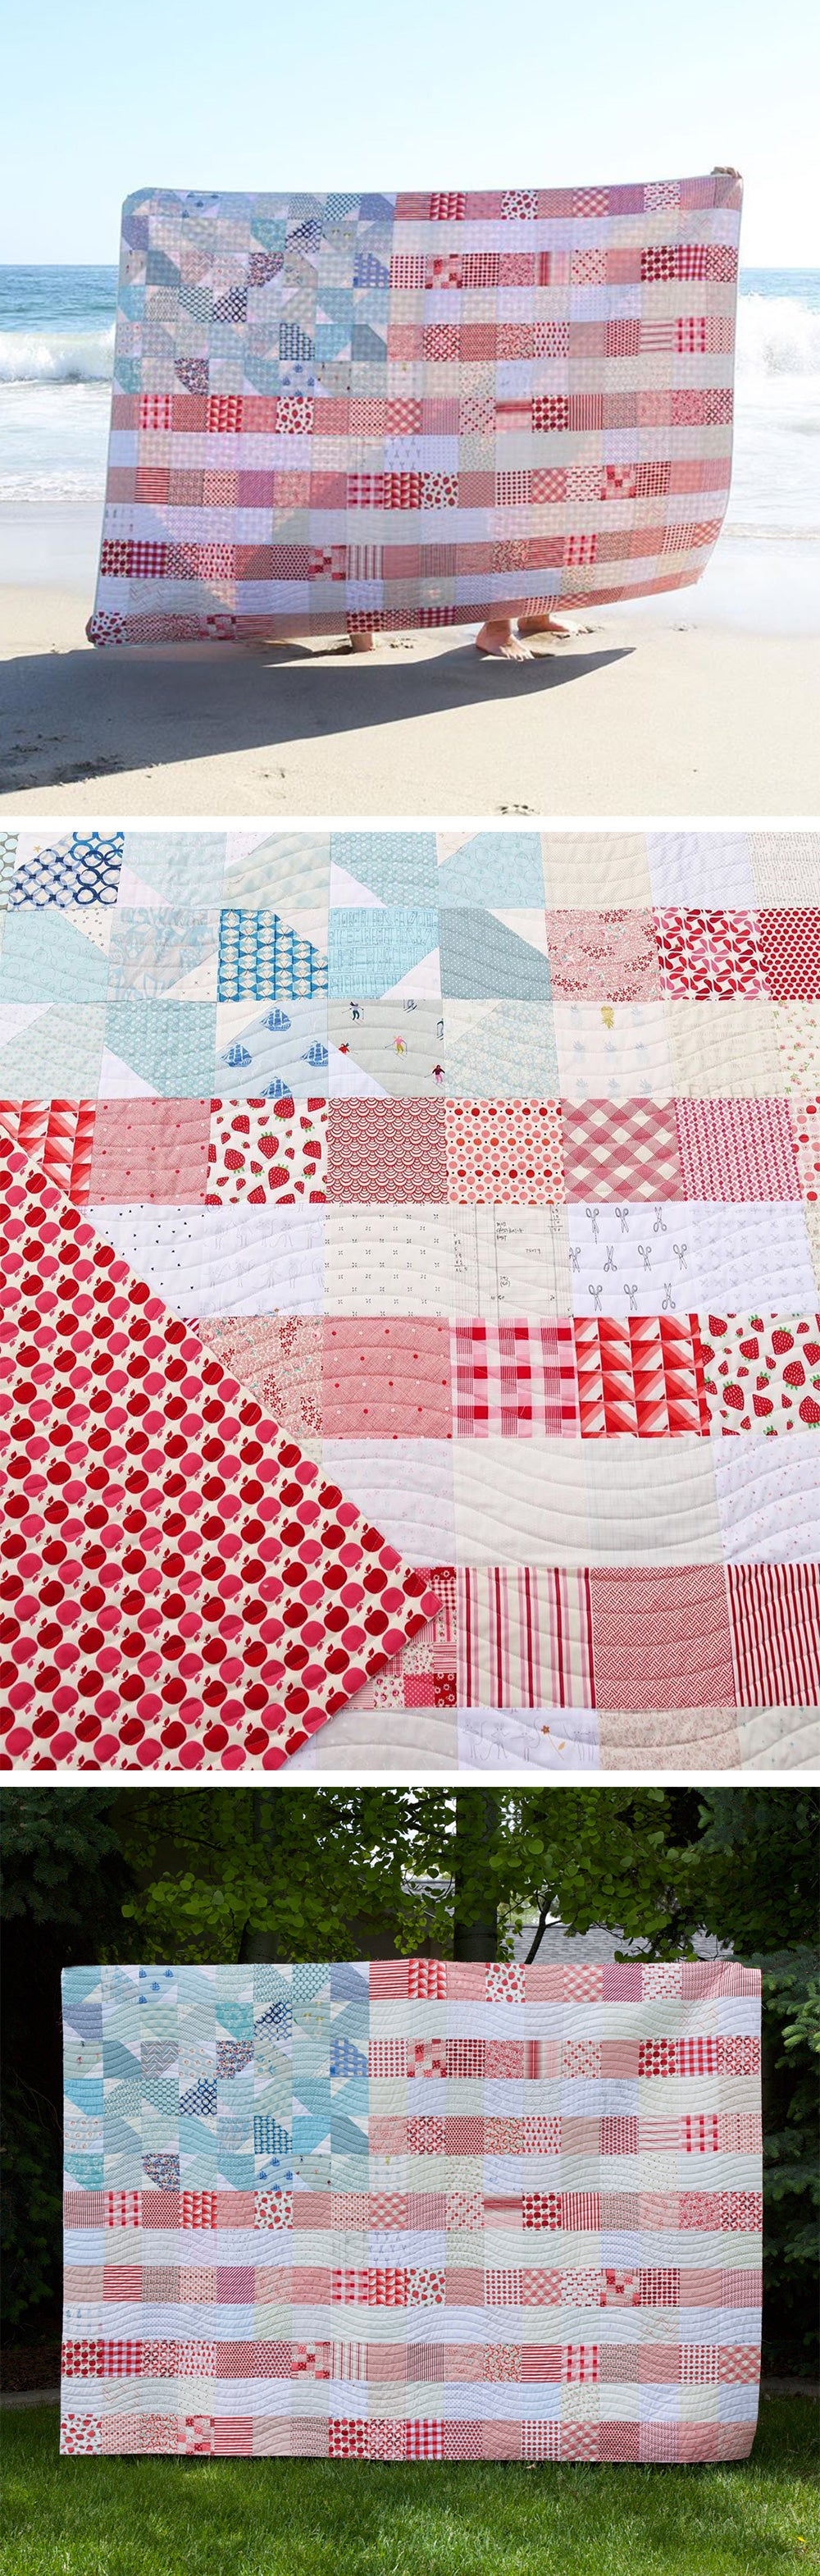 Yankee Doodle Dandy (USA Flag) Quilt Kit - Washed Out Version by Maker Valley